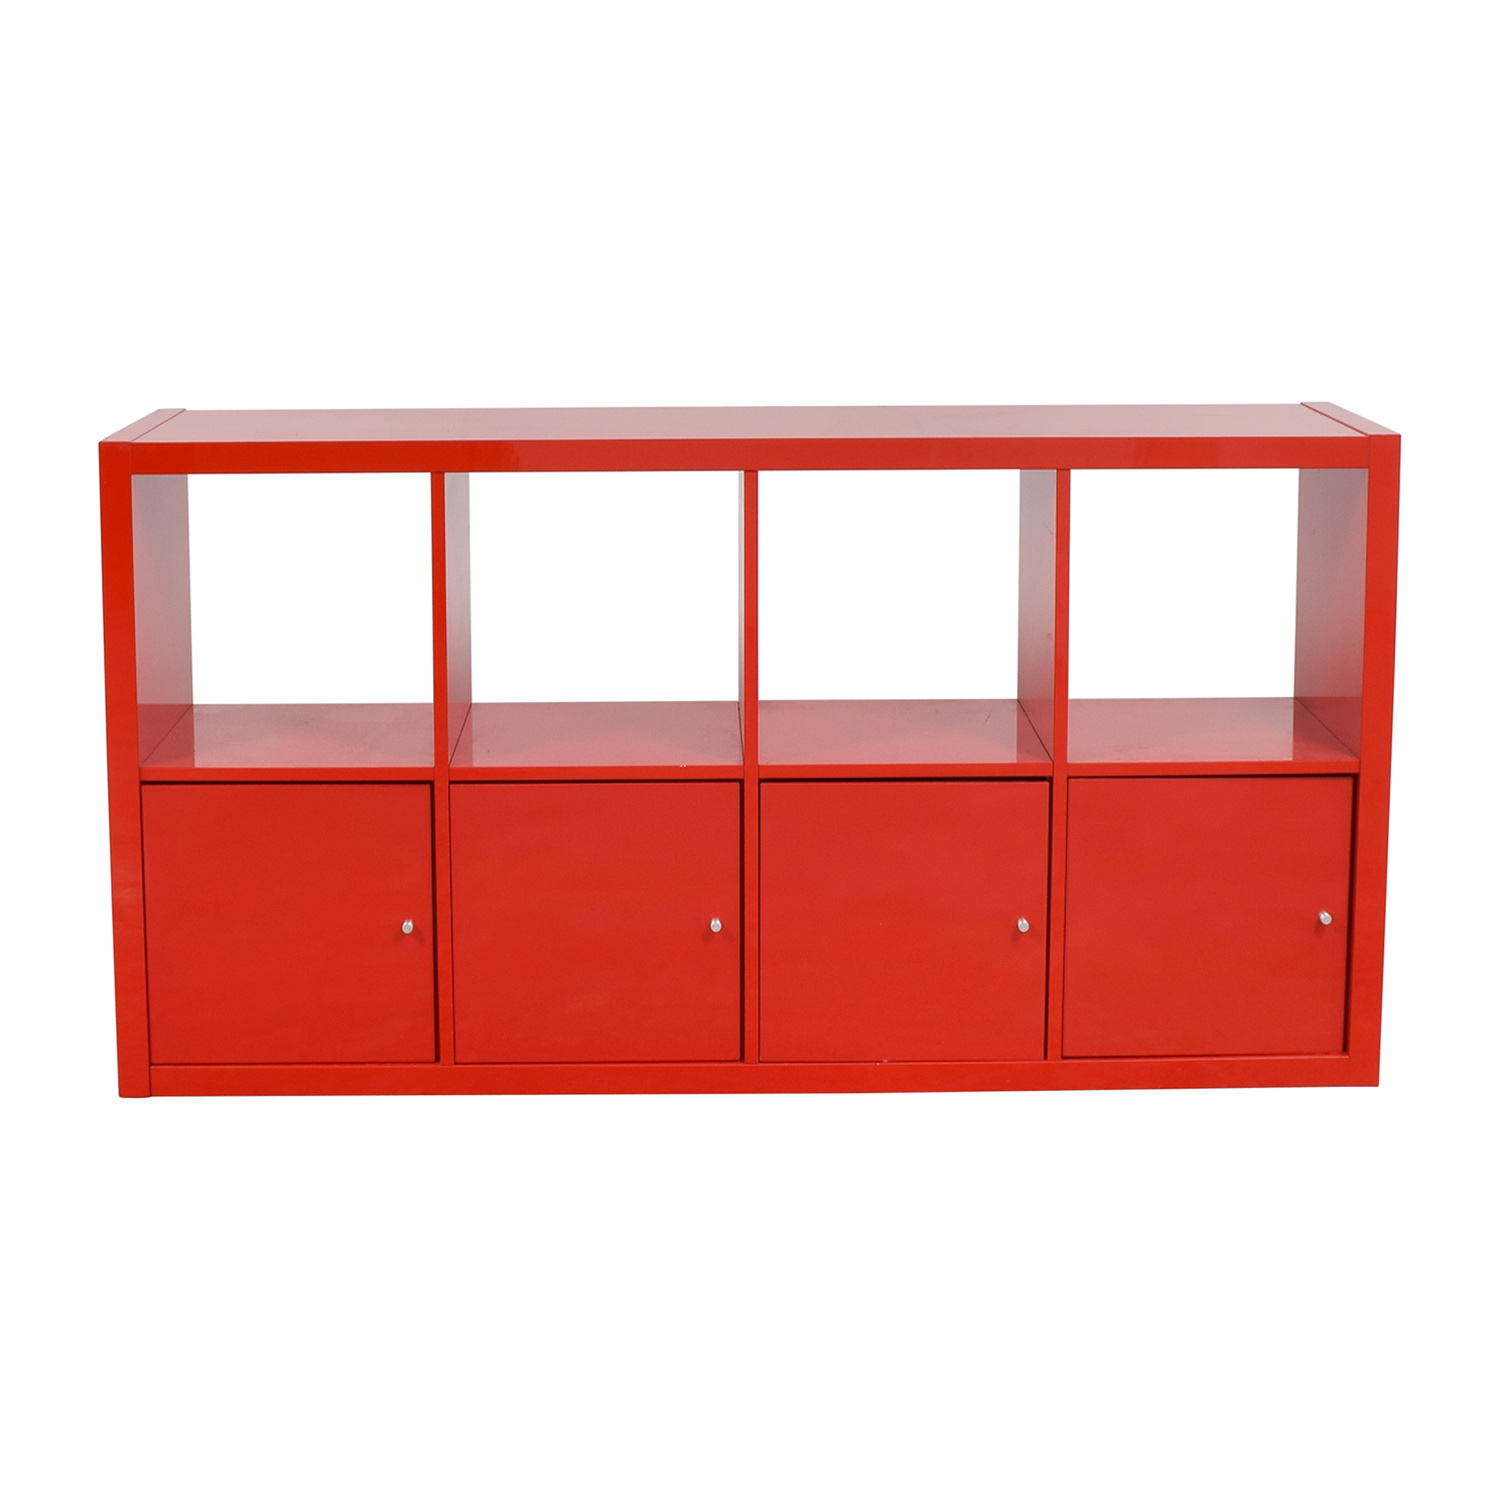 Ikea Storage Cabinets 78 Off Ikea Ikea Red Shelving With Storage Cabinets Storage